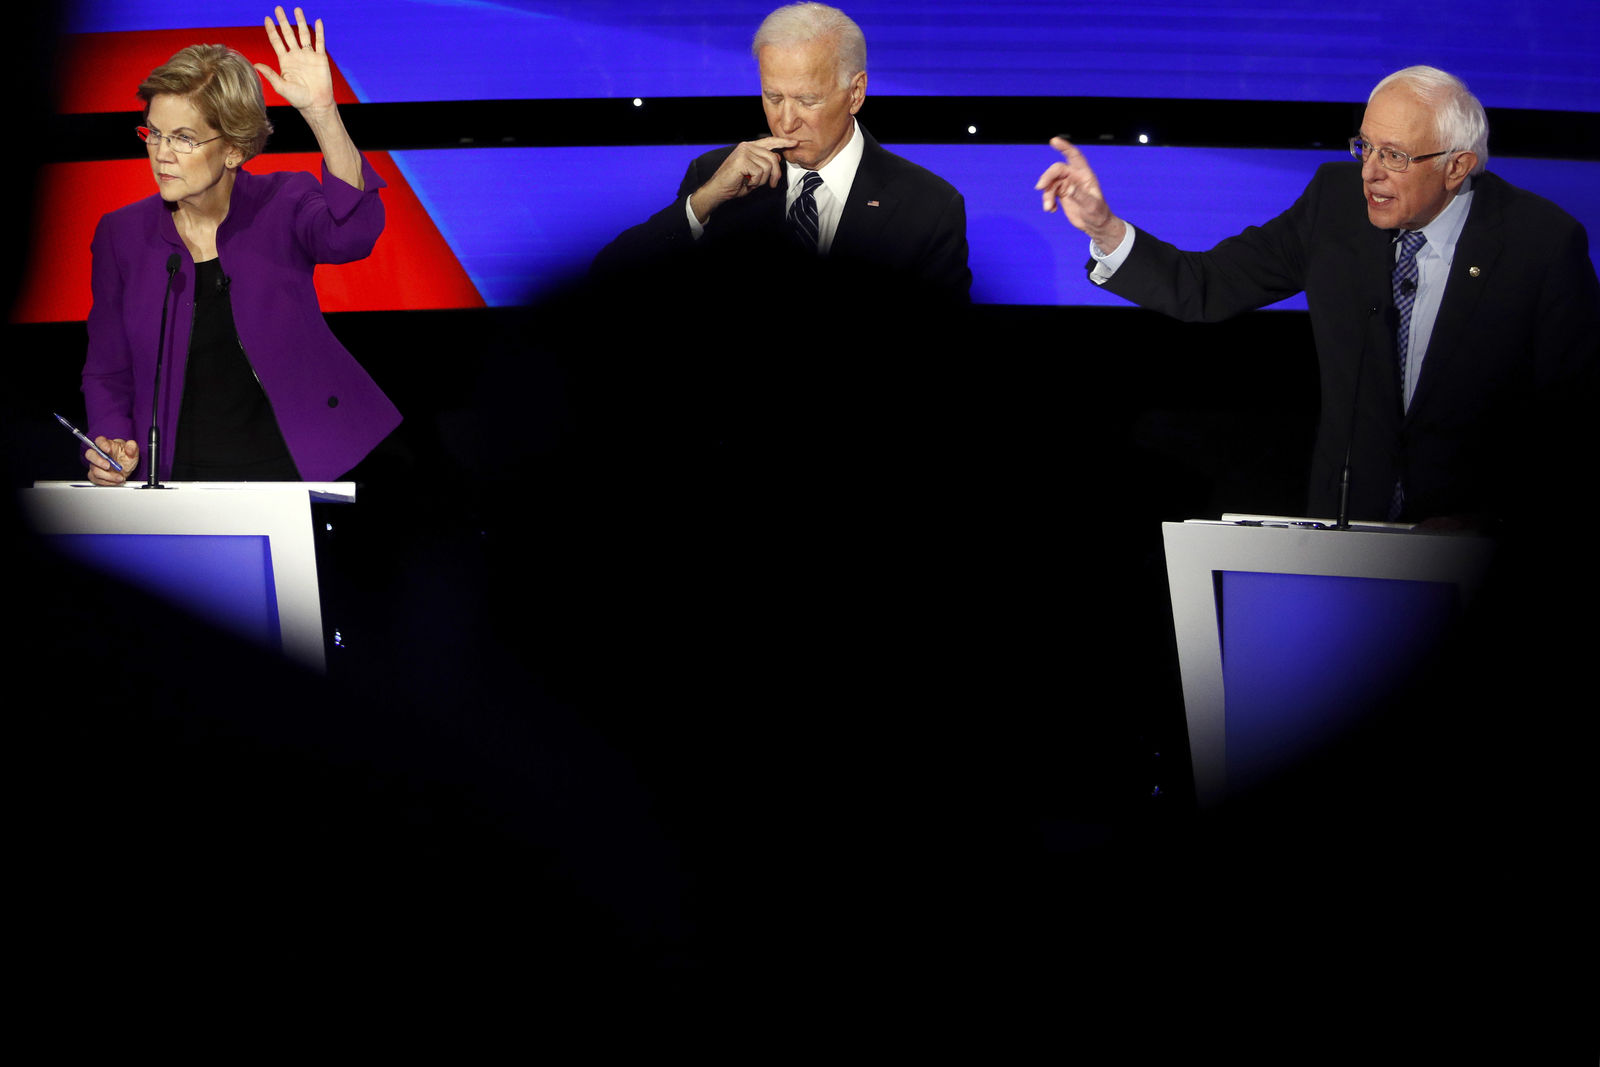 FILE - In this Jan. 14, 2020, file photo Democratic presidential candidate Sen. Elizabeth Warren, D-Mass., and Sen. Bernie Sanders, I-Vt., raise their hands to answer a question as Joe Biden pauses during a Democratic presidential primary debate hosted by CNN and the Des Moines Register in Des Moines, Iowa. Biden's juggling of the left wing along with mainstream Democrats and independents and Republicans disgruntled with Trump could end up as an unsuccessful attempt to be all things to all people. (AP Photo/Patrick Semansky, File)